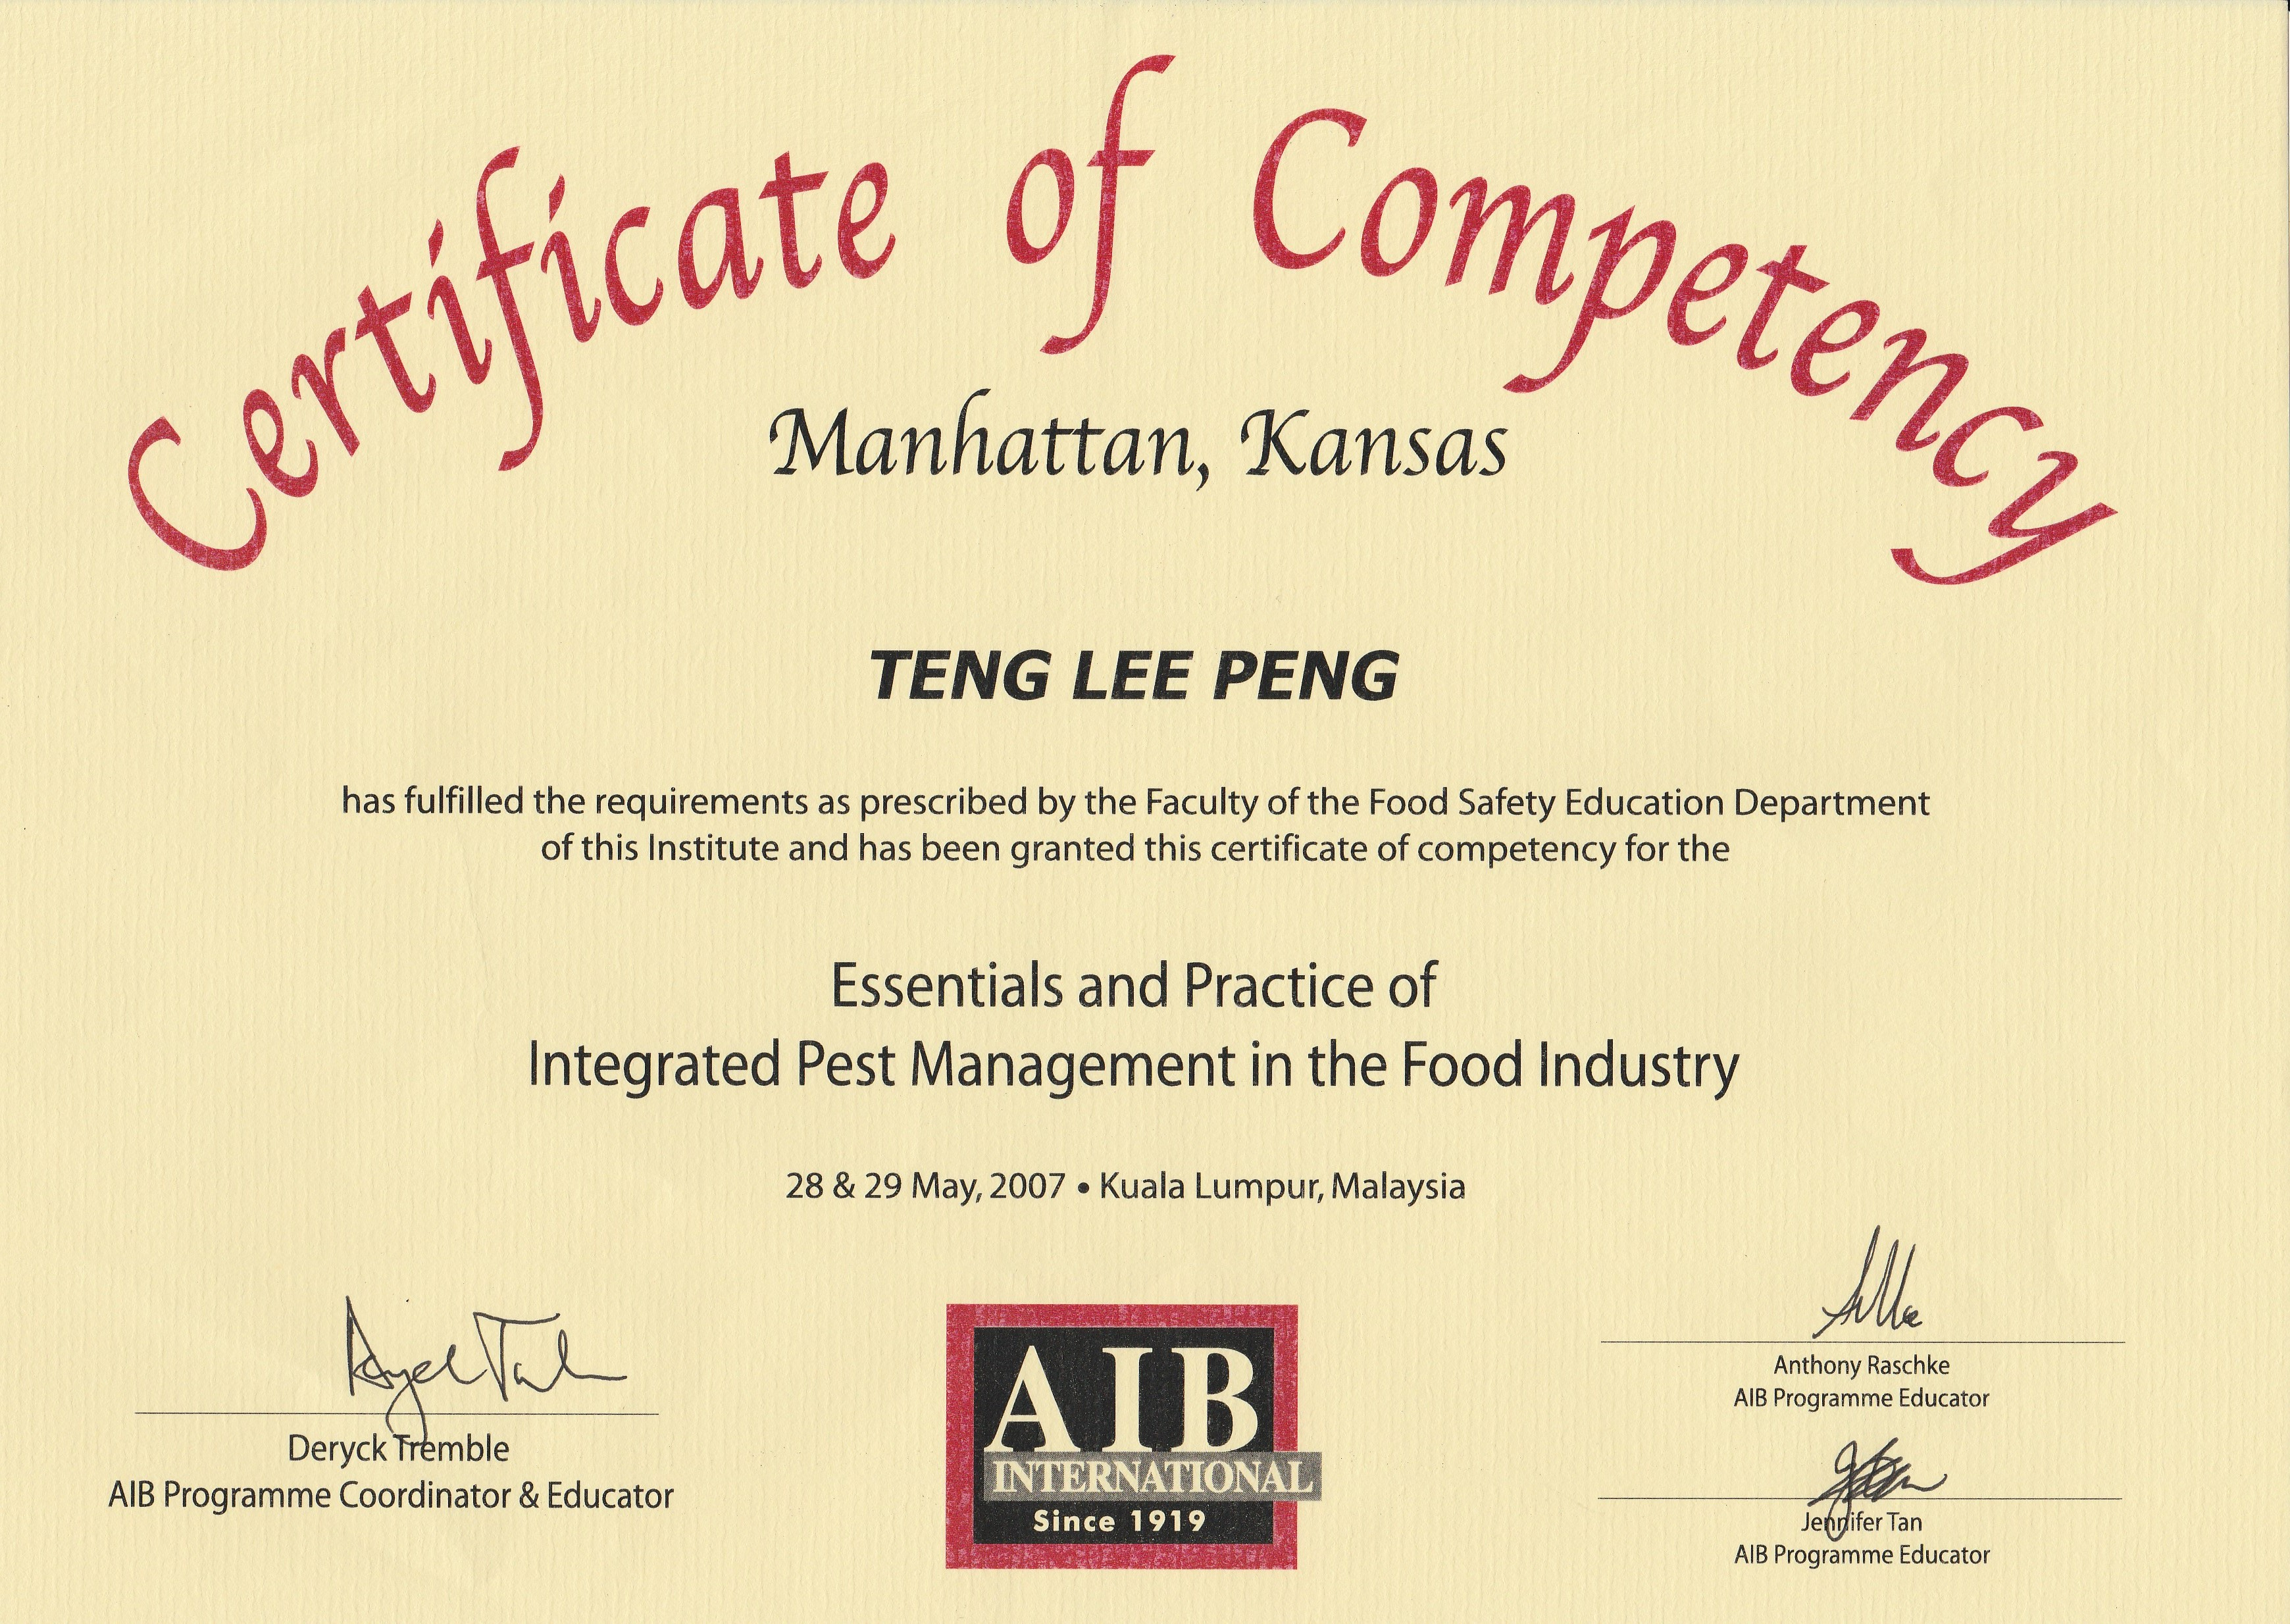 Certificate award enfresh pest hygiene services pest aib international certificate of competence tlp 2007 xflitez Choice Image